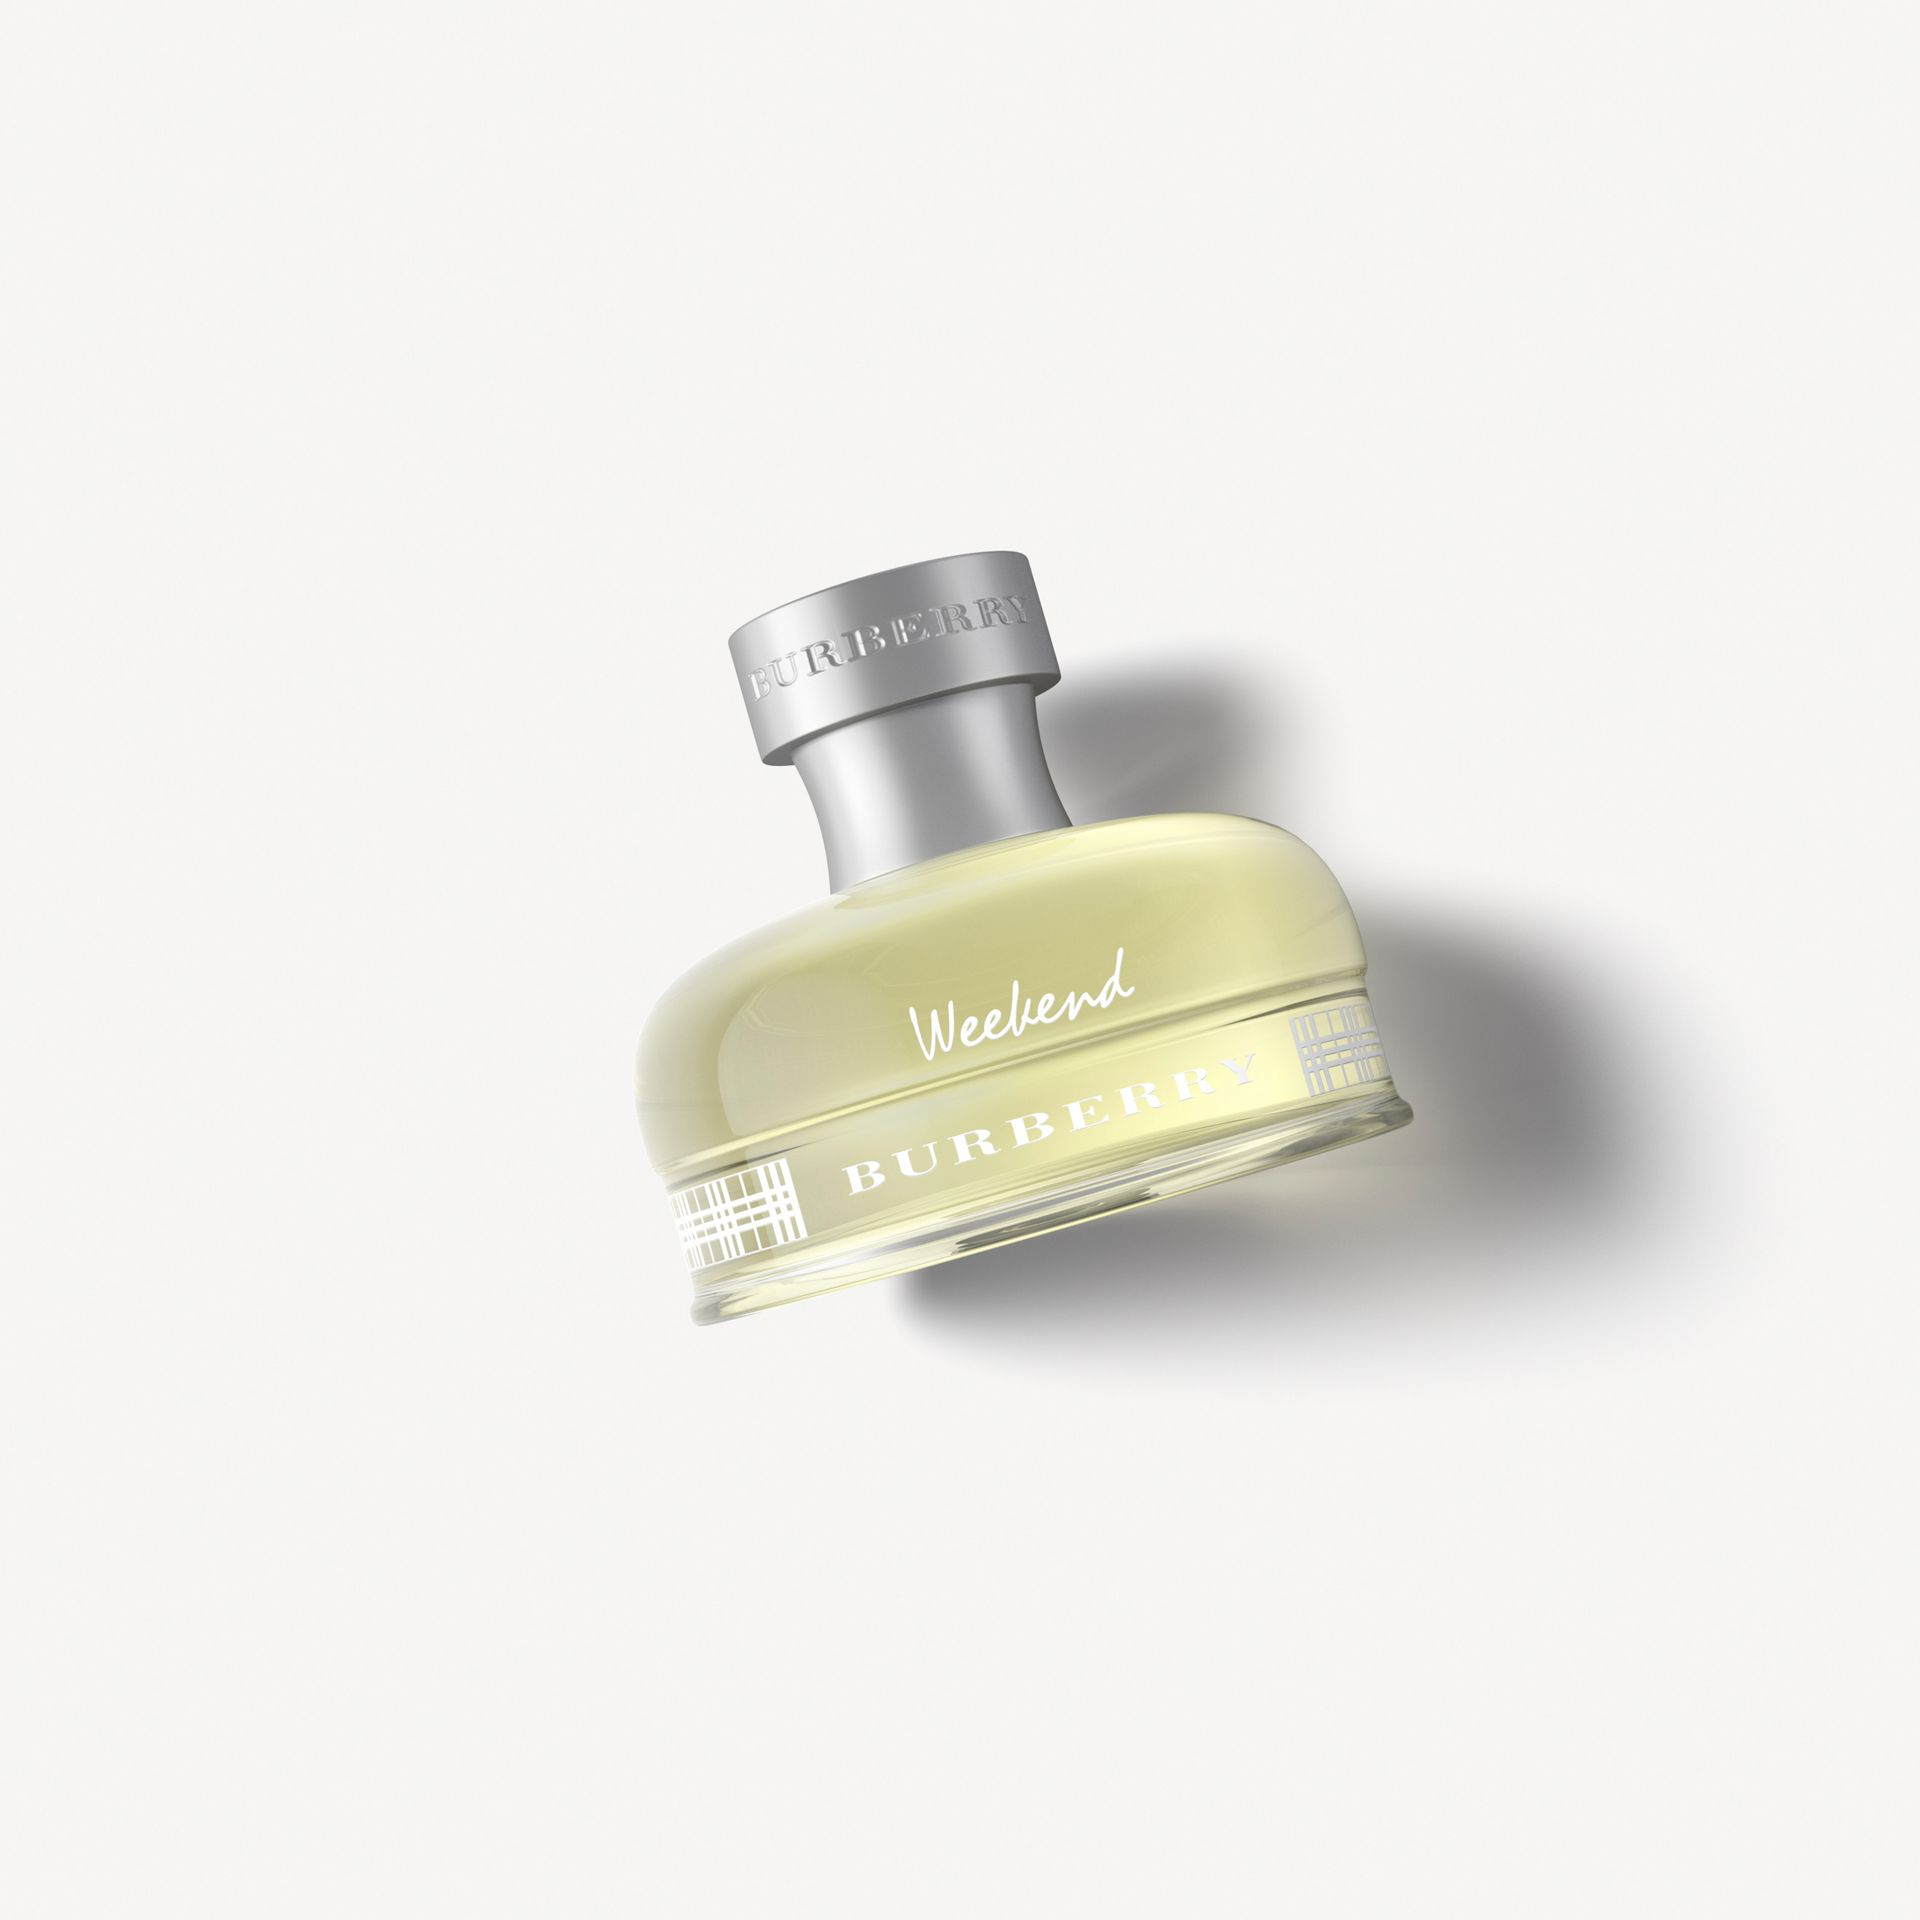 Burberry Weekend Eau de Parfum 50ml - Women | Burberry - gallery image 1